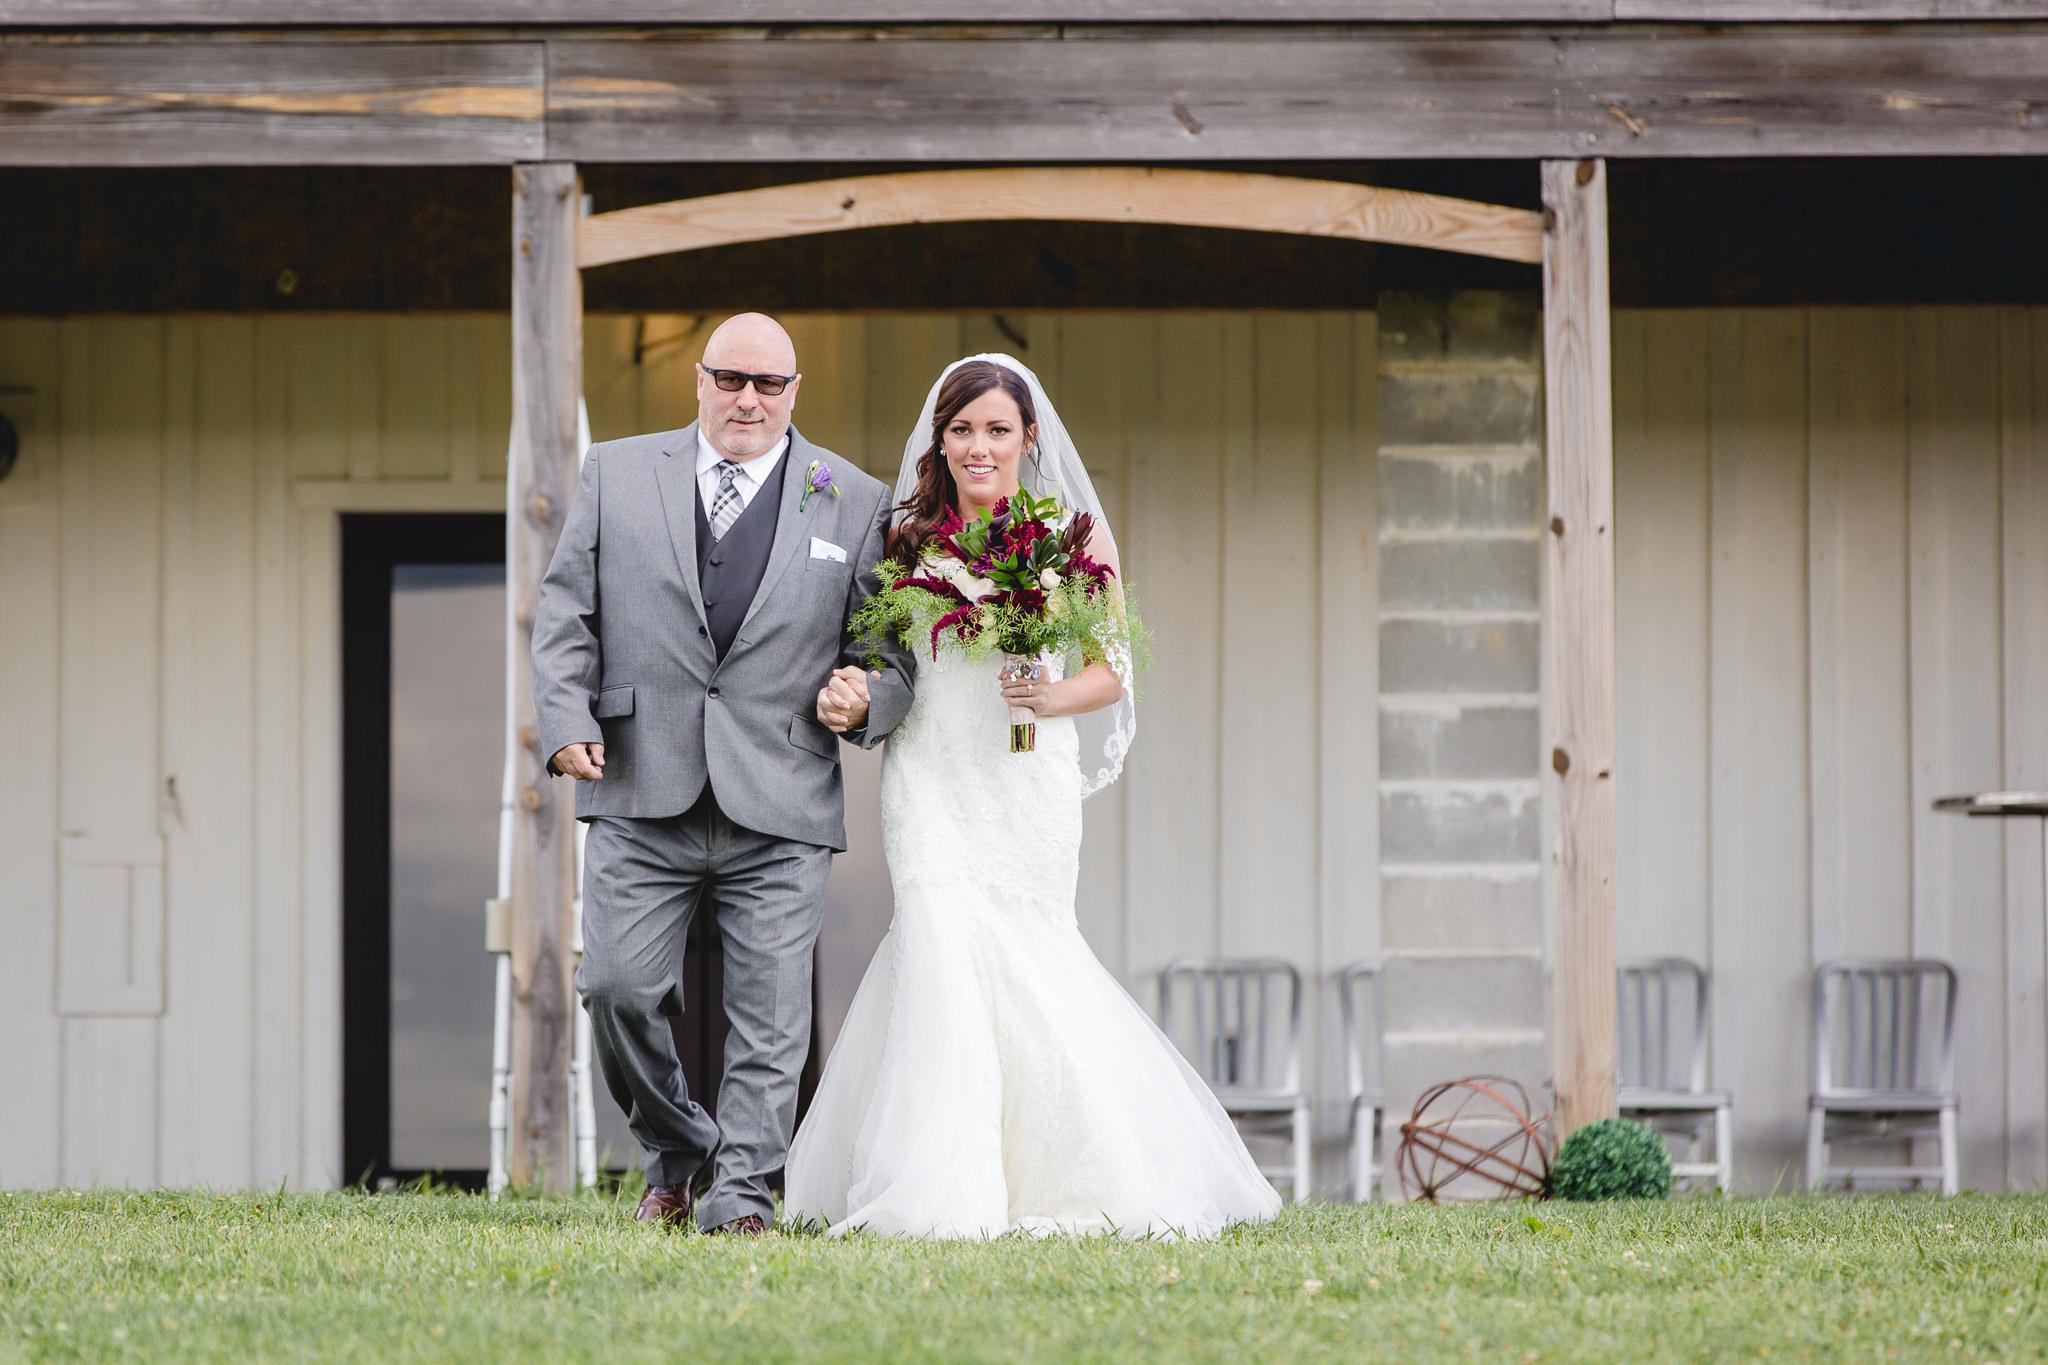 Father of the bride walks his daughter down the aisle at White Barn